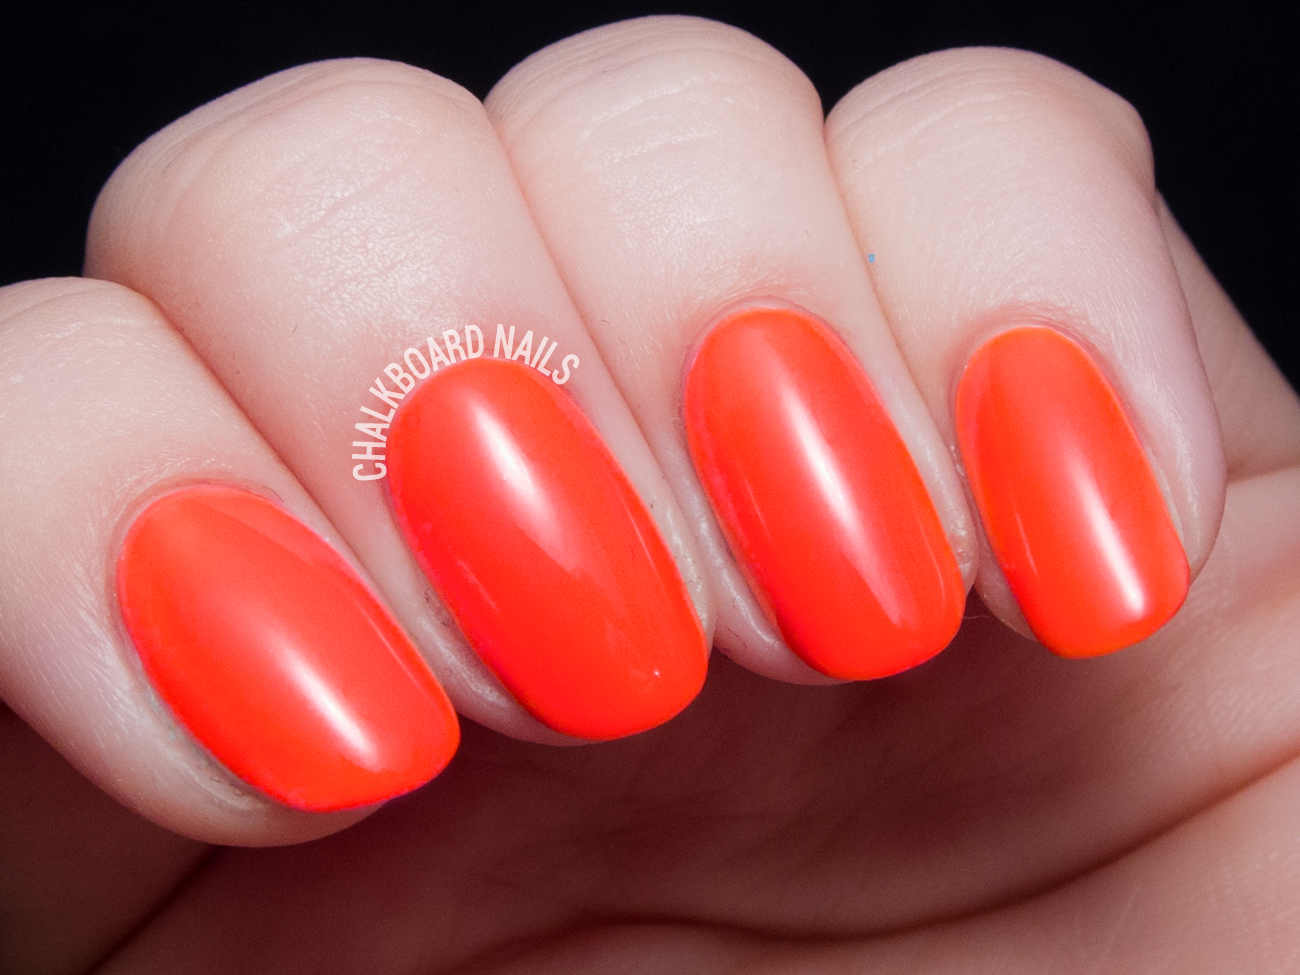 China Glaze Red-y to Rave via @chalkboardnails